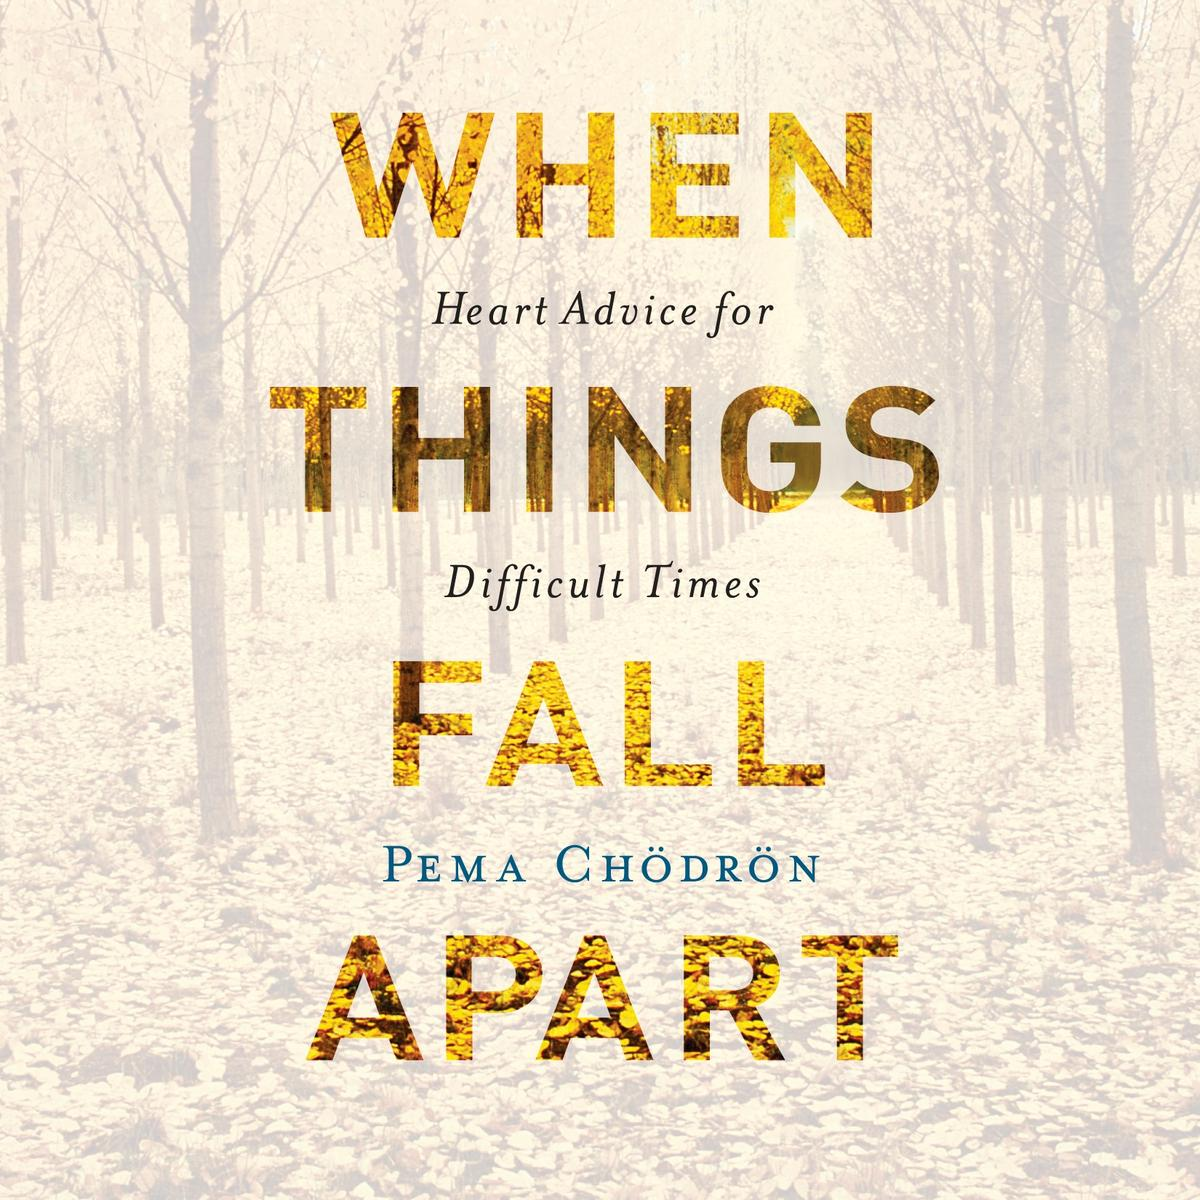 When Things Fall Apart - Pema Chodron is amazing. You could pick up any book she has written, at random, and learn something that will change your life for the better.This book especially speaks to anyone going through hard times. This society is one that is obsessed with achievement and with egocentric leadership and confidence.But what happens when life falls apart, as it inevitably does? Who is there to speak to the unfortunate realities of life? Pema Chodron, a Buddhist nun living in Nova Scotia, offers a breath of fresh air for those suffocating from the lingering staleness of unsolicited advice.Read this--and come to know yourself and others better than you ever thought you could.